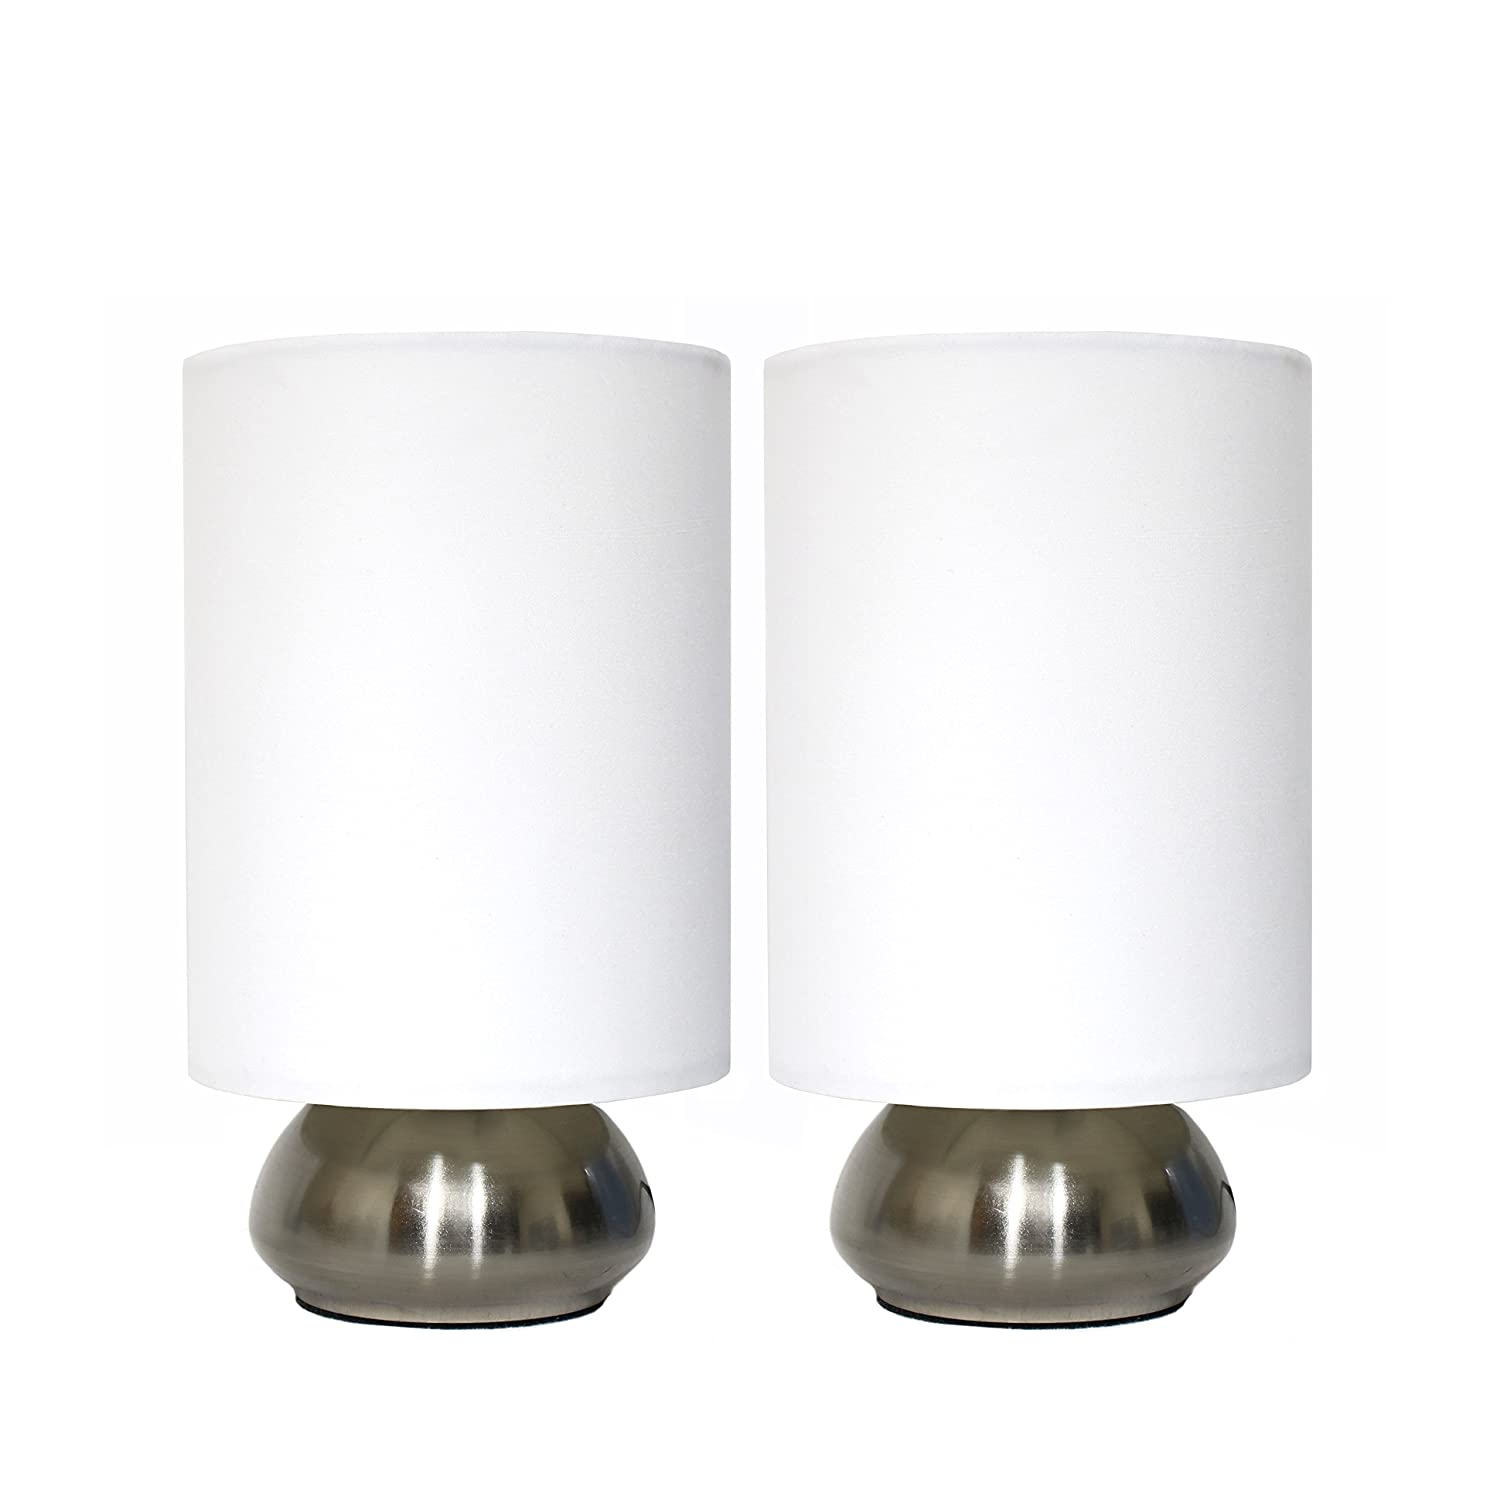 Matching floor and table lamps - Simple Designs Lt2016 Ivy 2pk Gemini Brushed Nickel 2 Pack Mini Touch Lamp Set With Fabric Shades Ivory